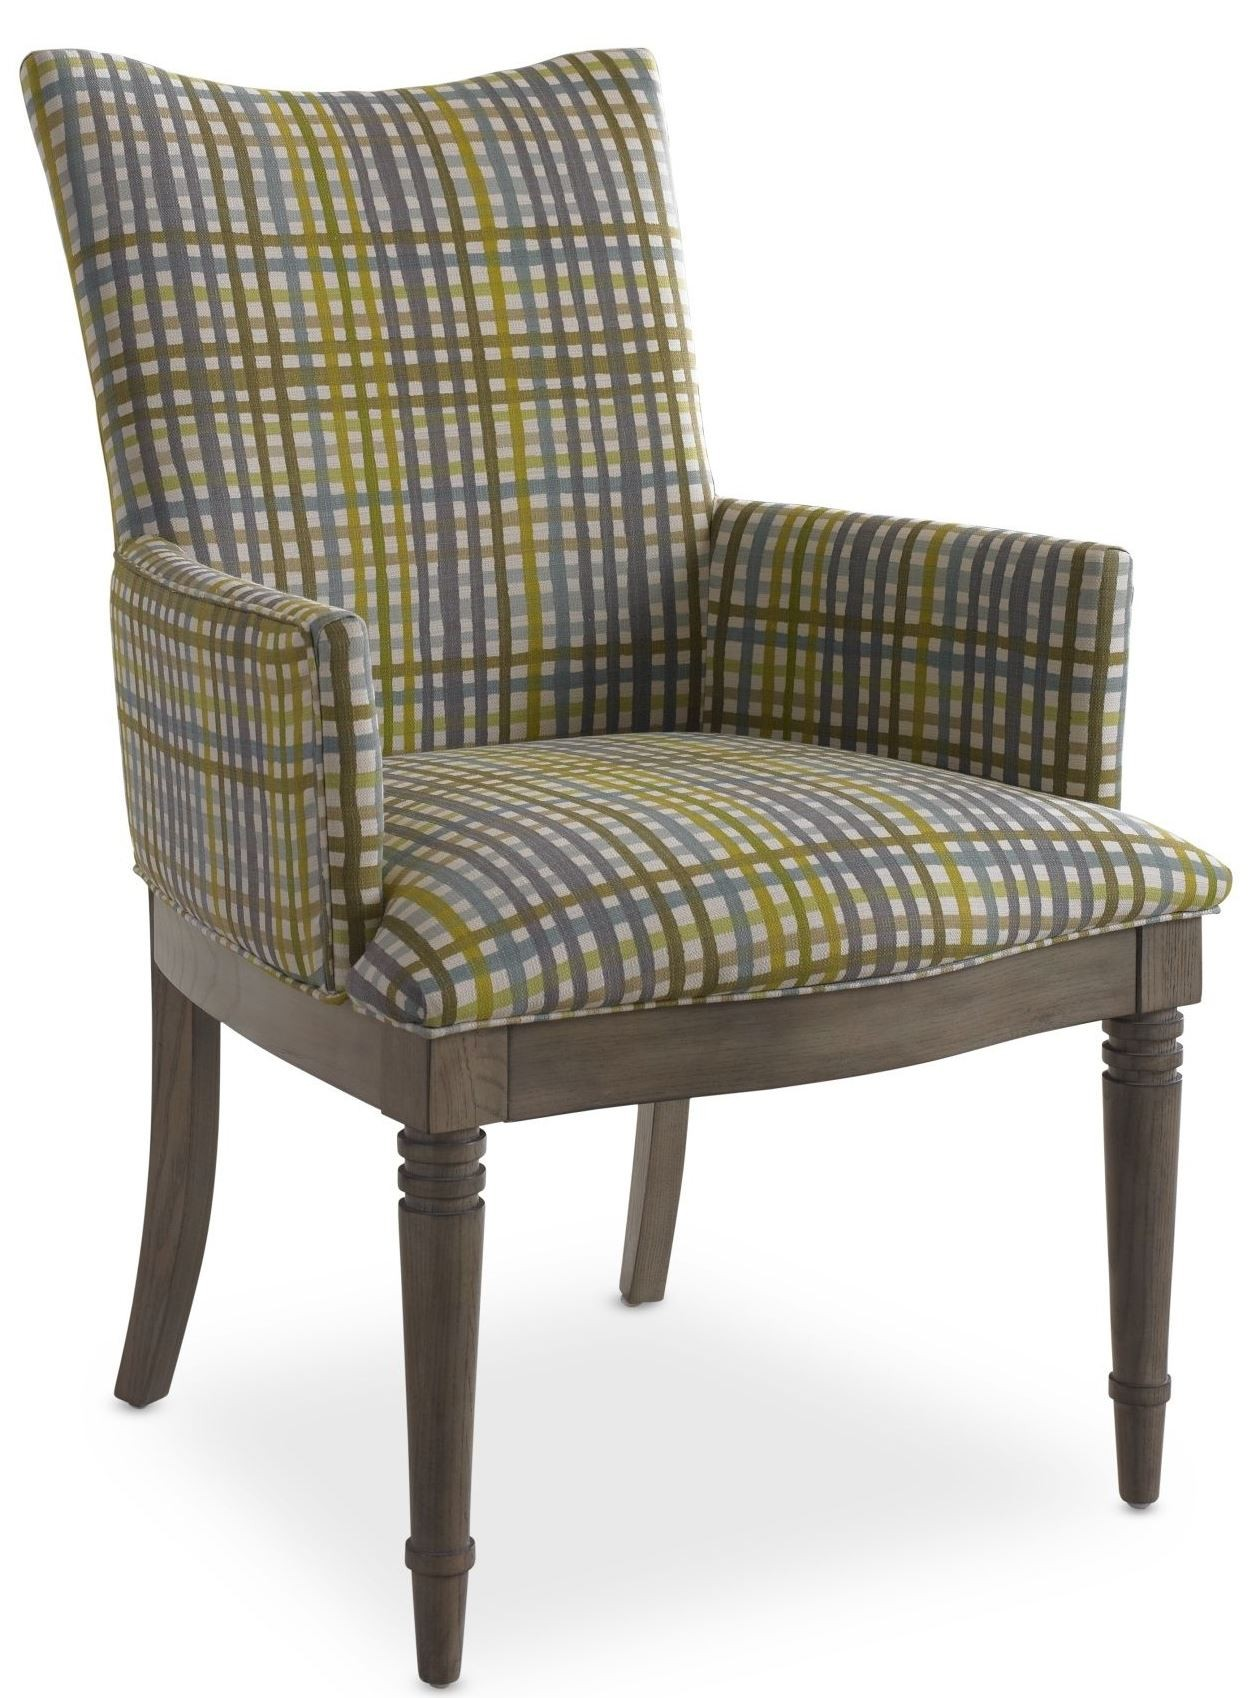 Open Seating Grey Oak Kate Plaid Arm Chair from Somerton